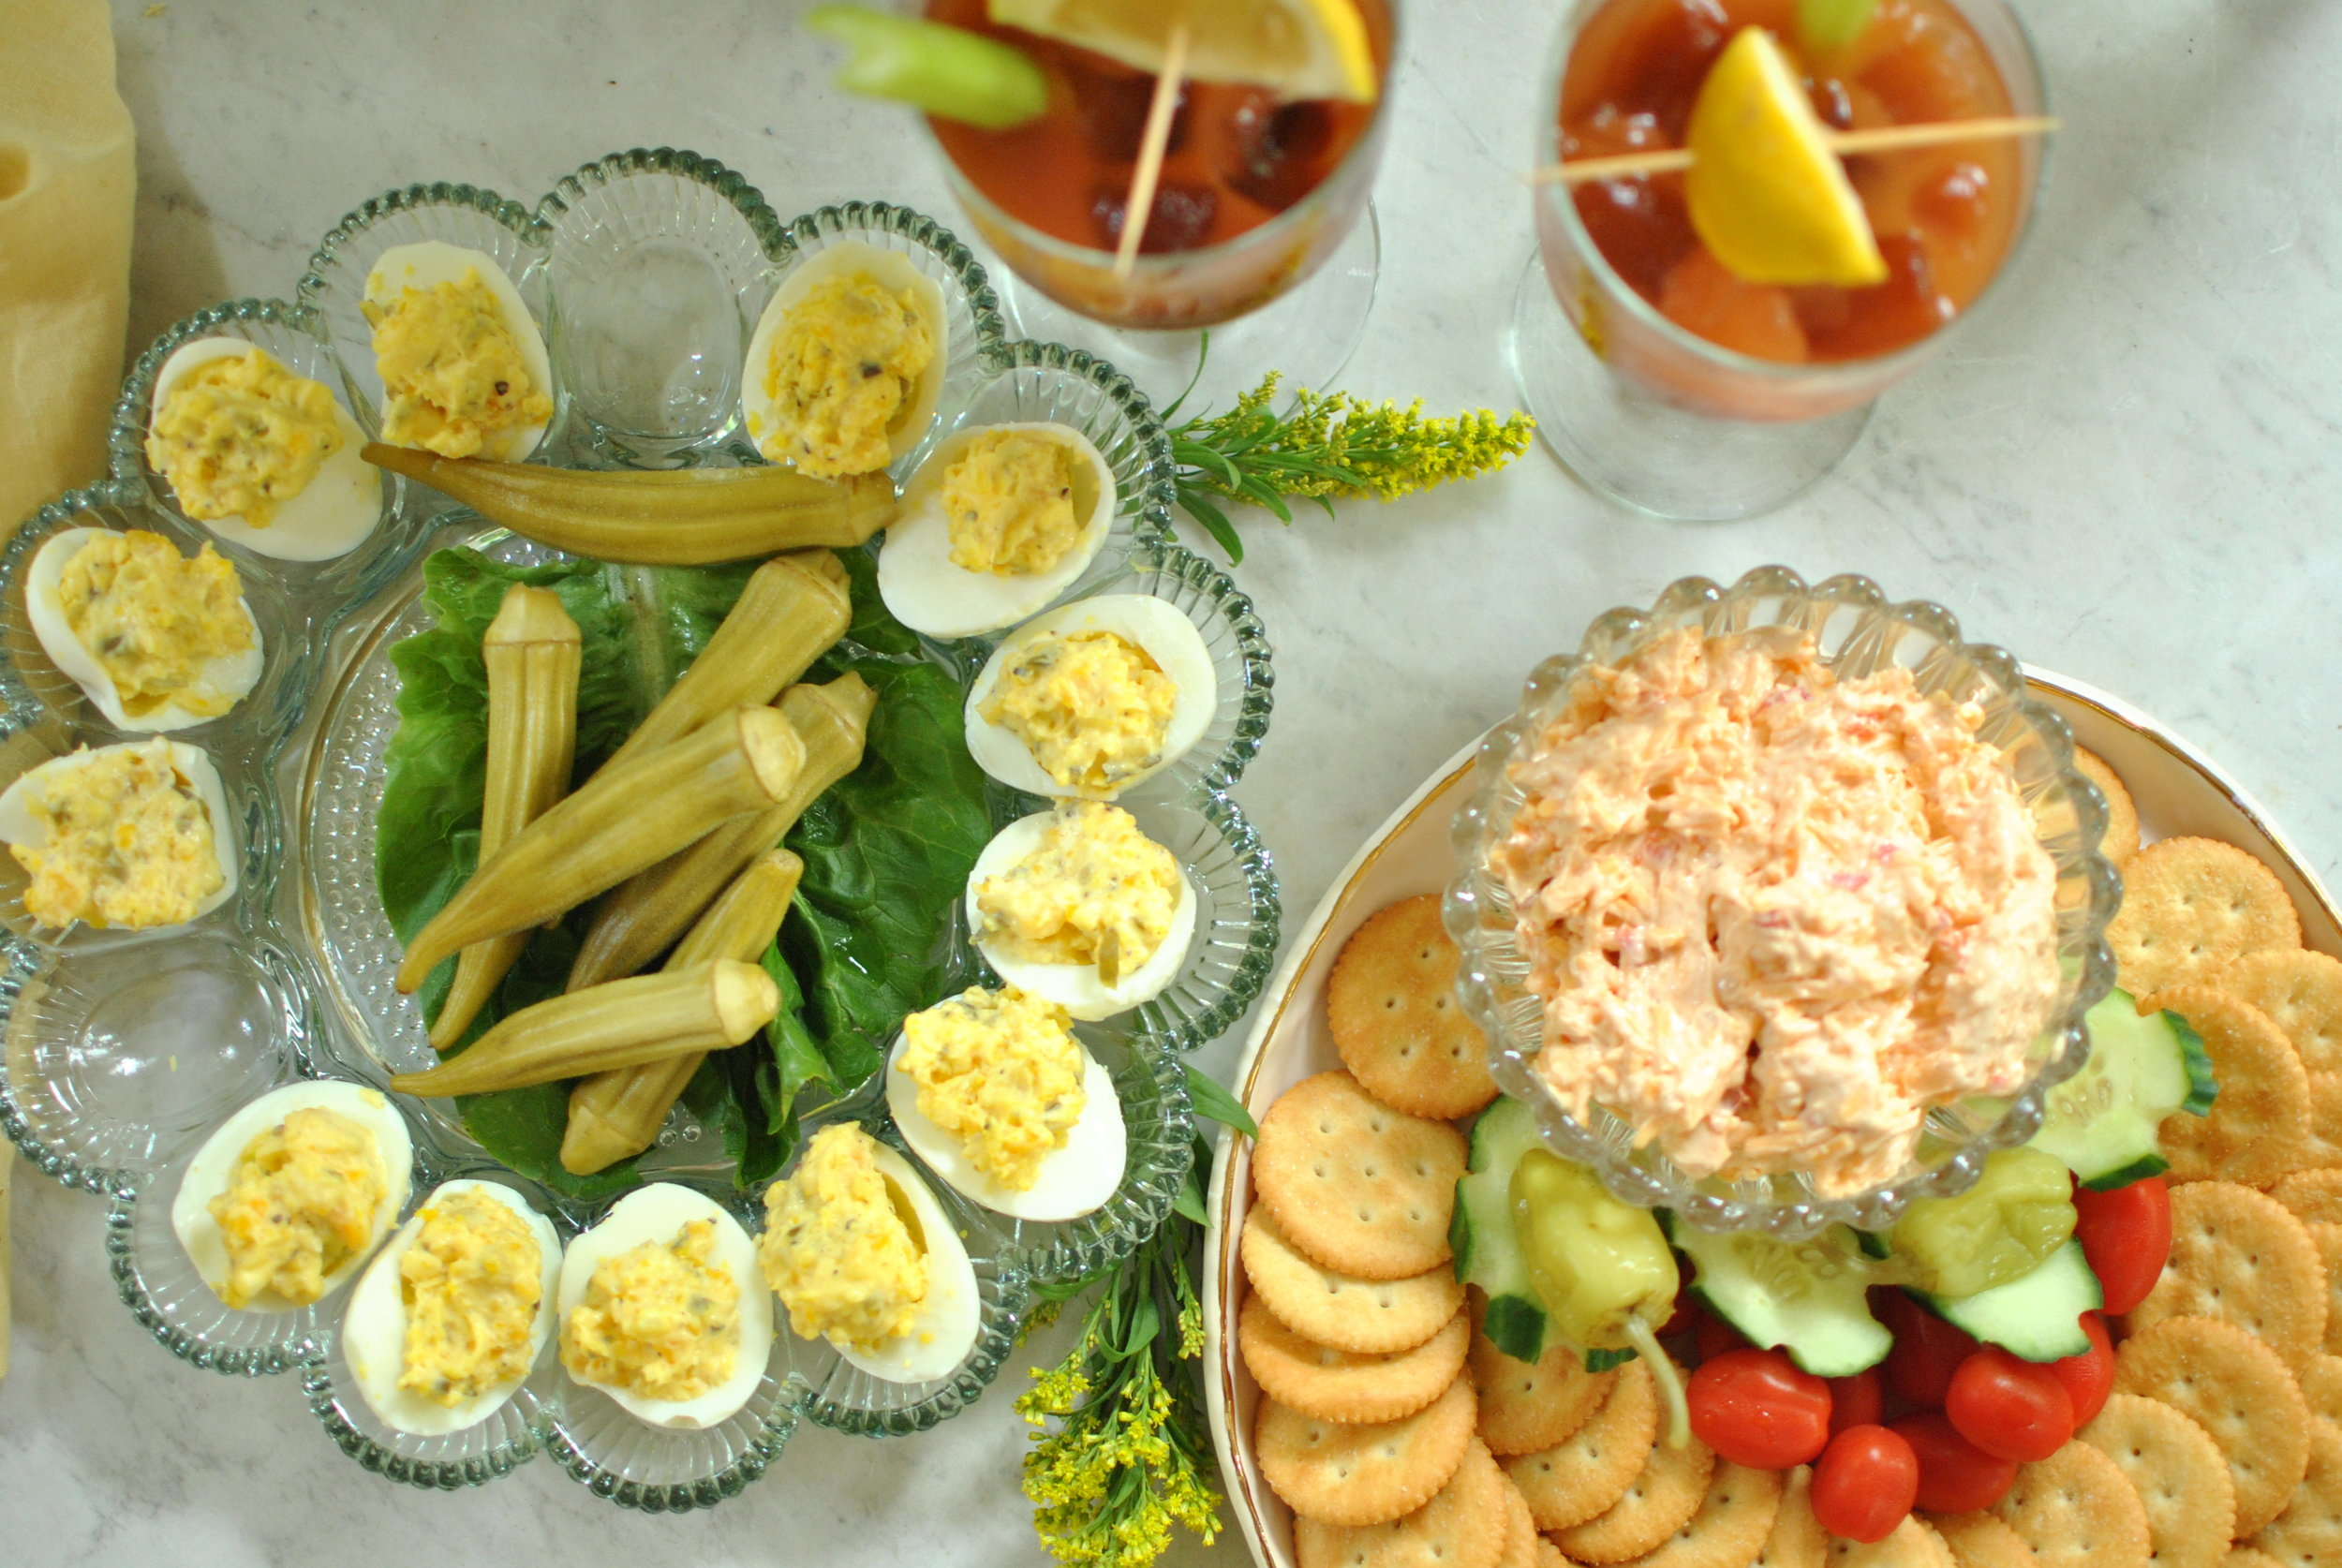 Deviled eggs and homemade pimento cheese